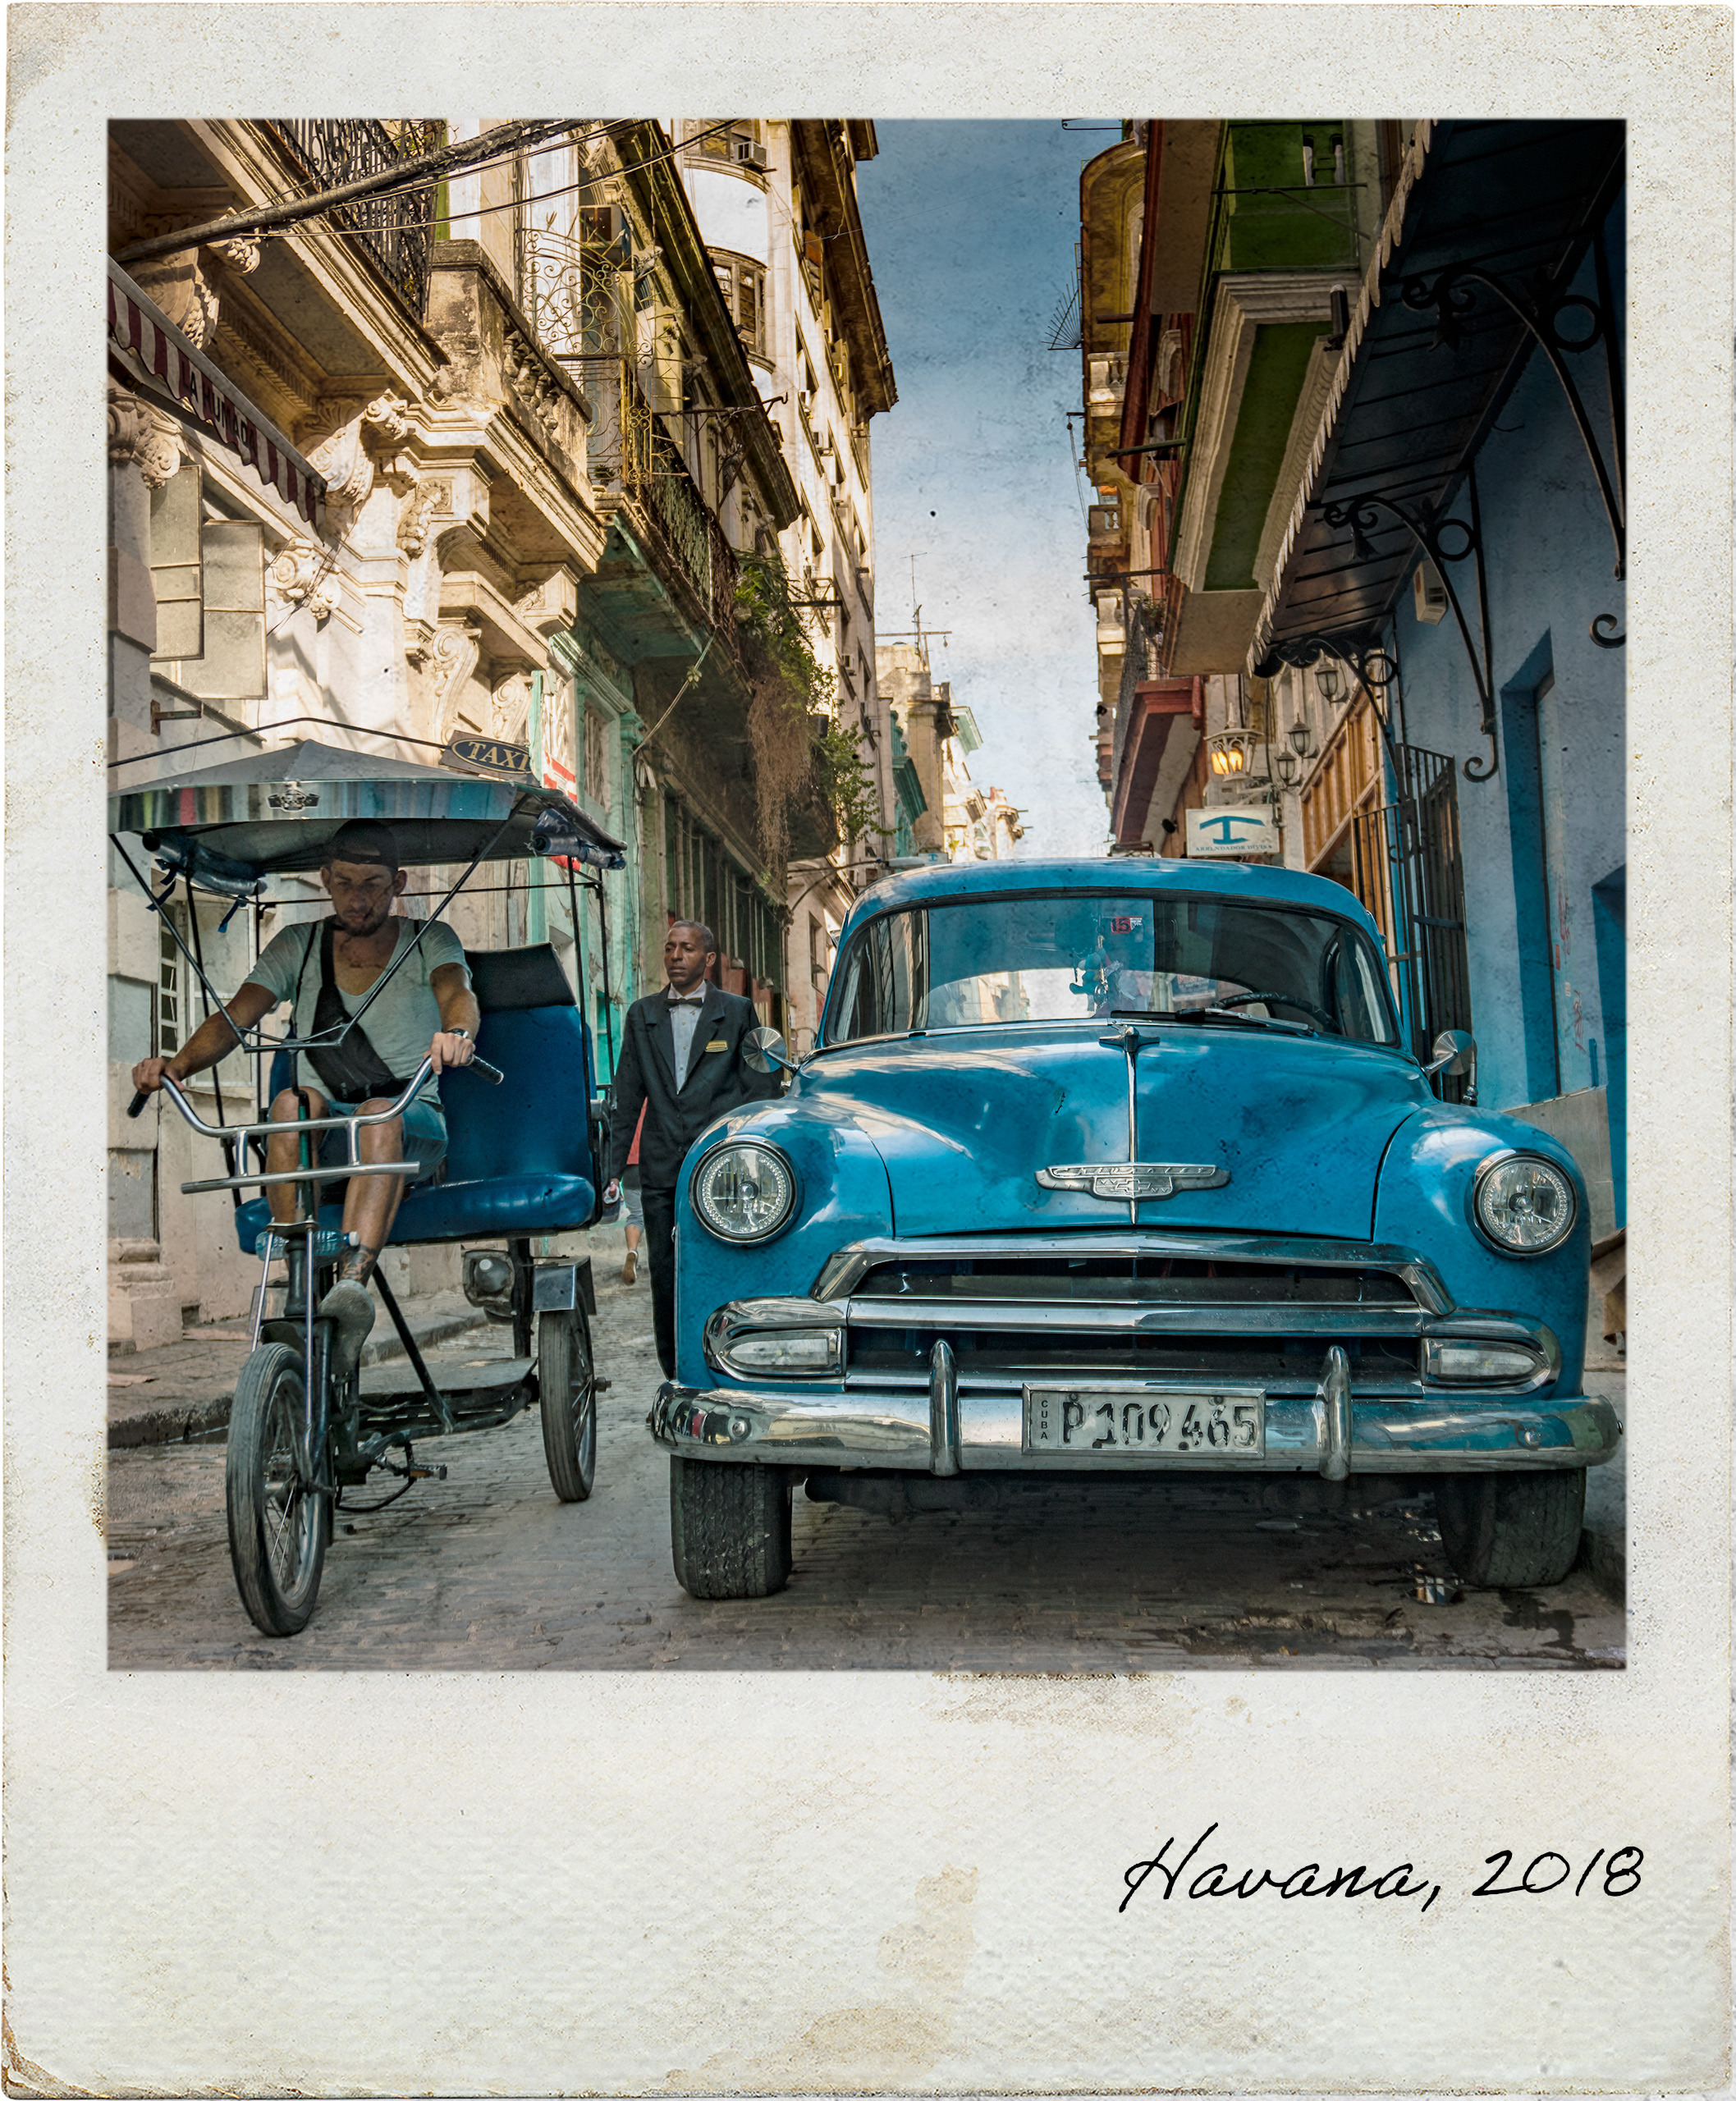 Old car and bicitaxi in Havana Vieja